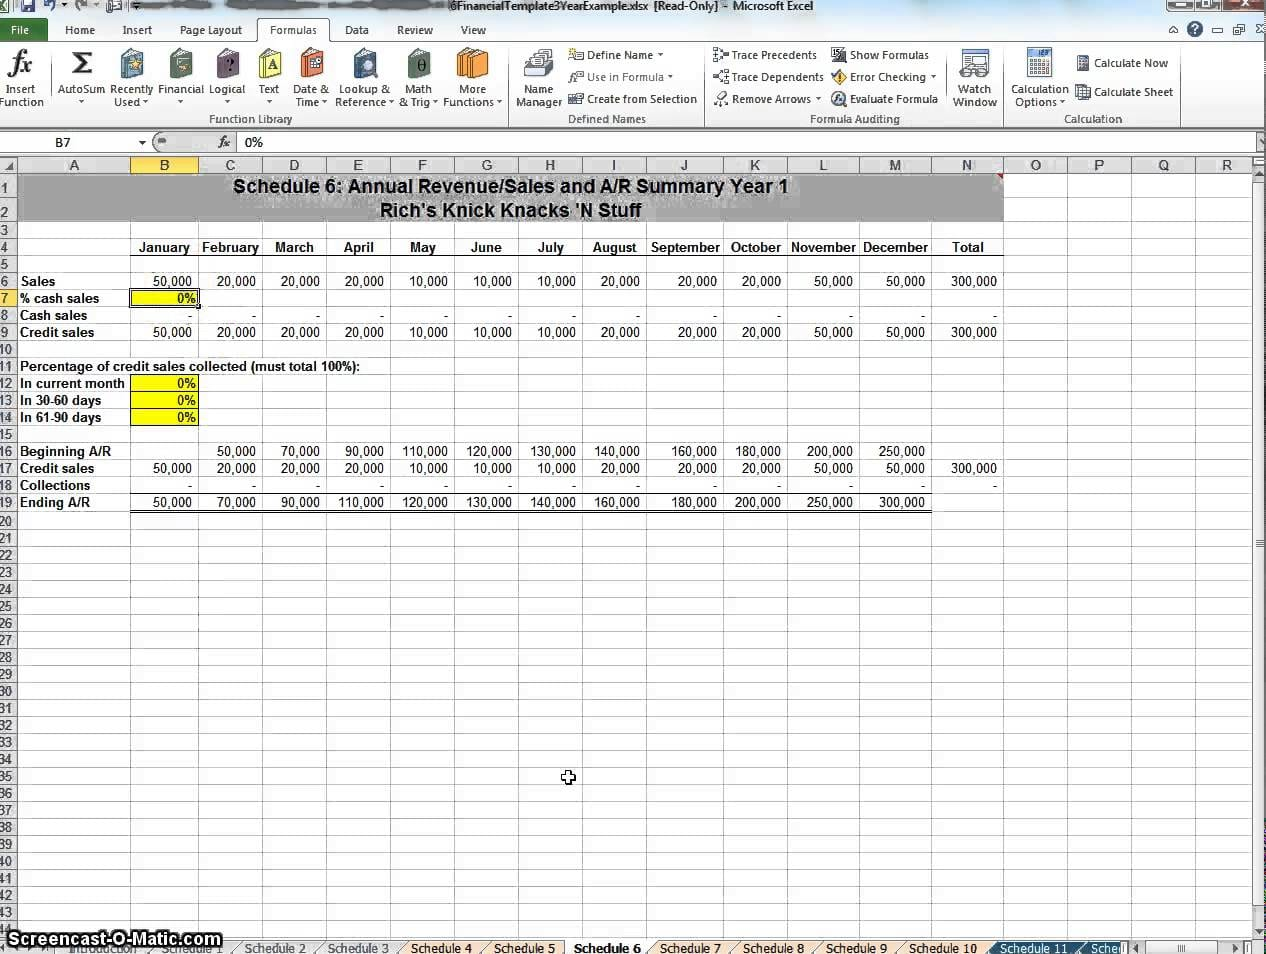 Financial Planning Templates Financial Plan Template Free Spreadsheet Templates for Busines Spreadsheet Templates for Busines Personal Financial Plan Template